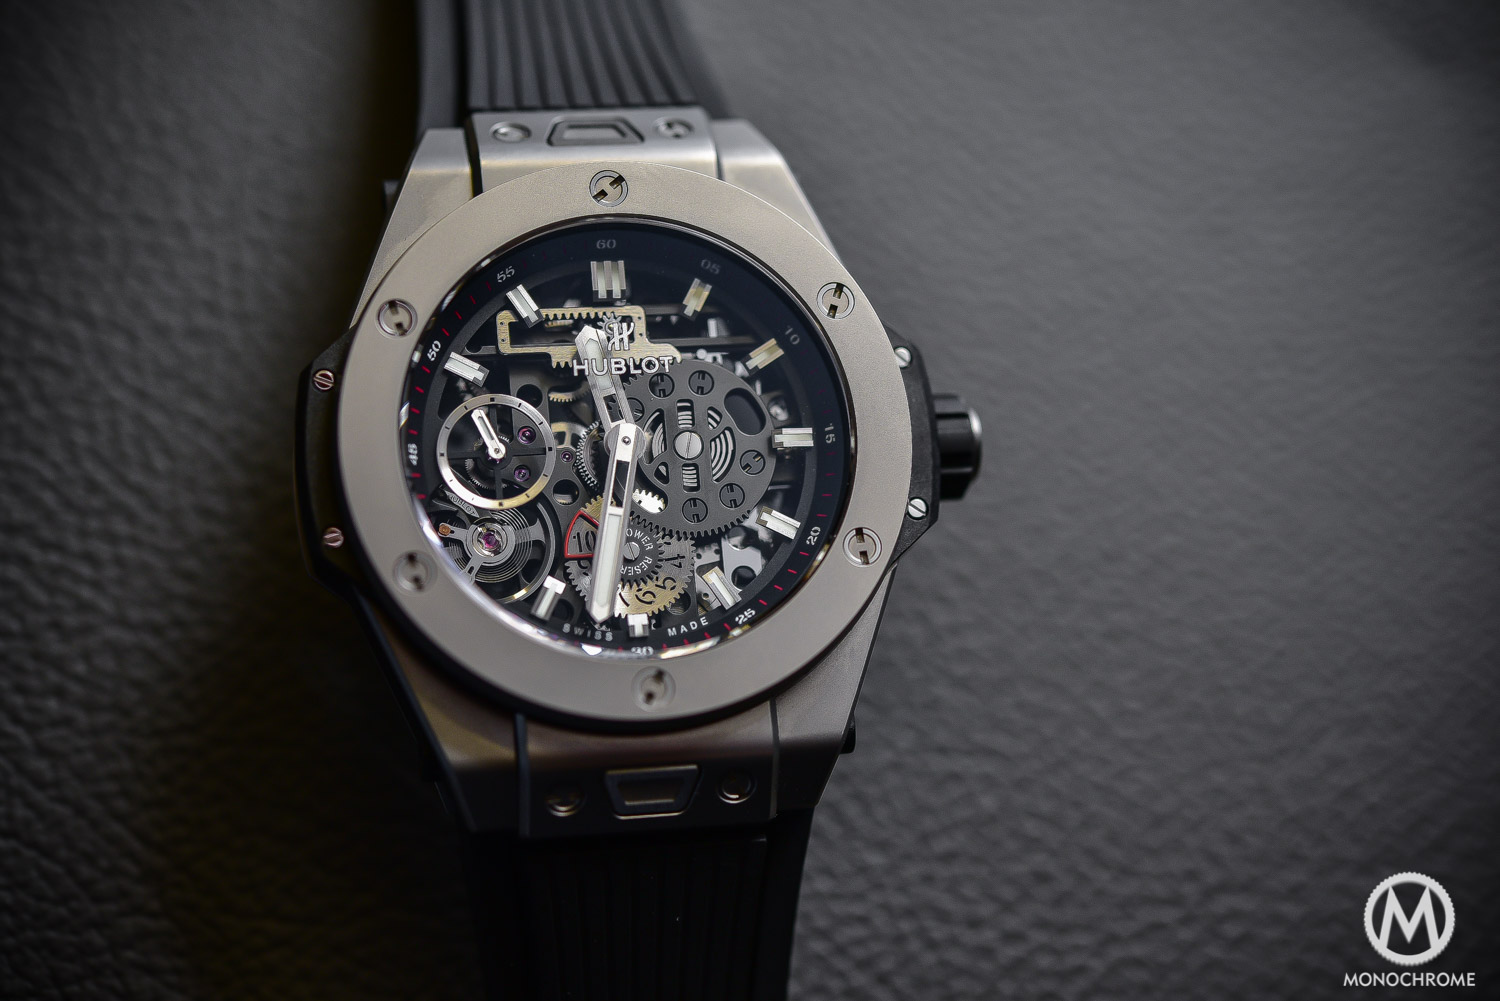 Most Expensive Watch In The World With Price >> Hands-on - Hublot Big Bang Meca-10, With The Brand's New 10-day Power Reserve Movement (specs ...